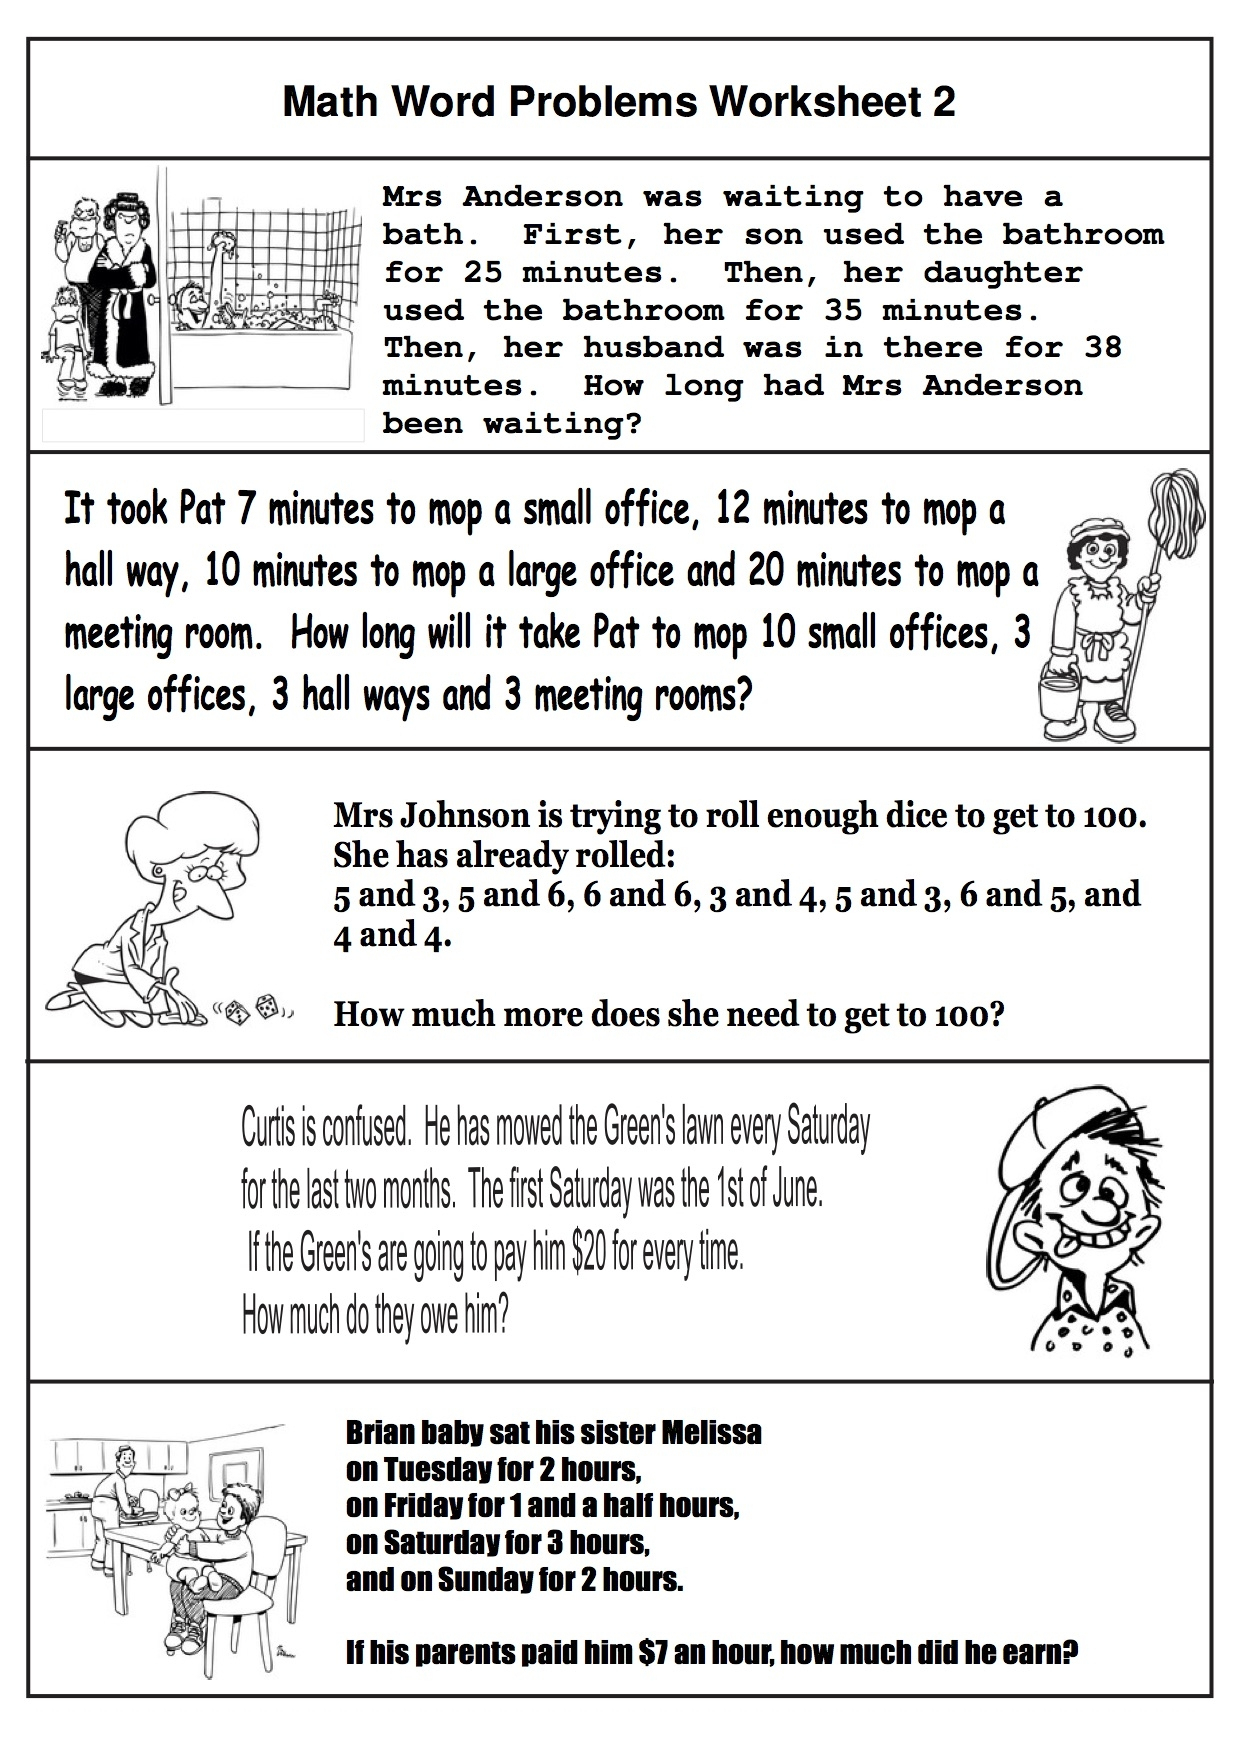 Fresh Math Word Problems For Kindergarten And First Grade | Fun - Free Printable 1St Grade Math Word Problems